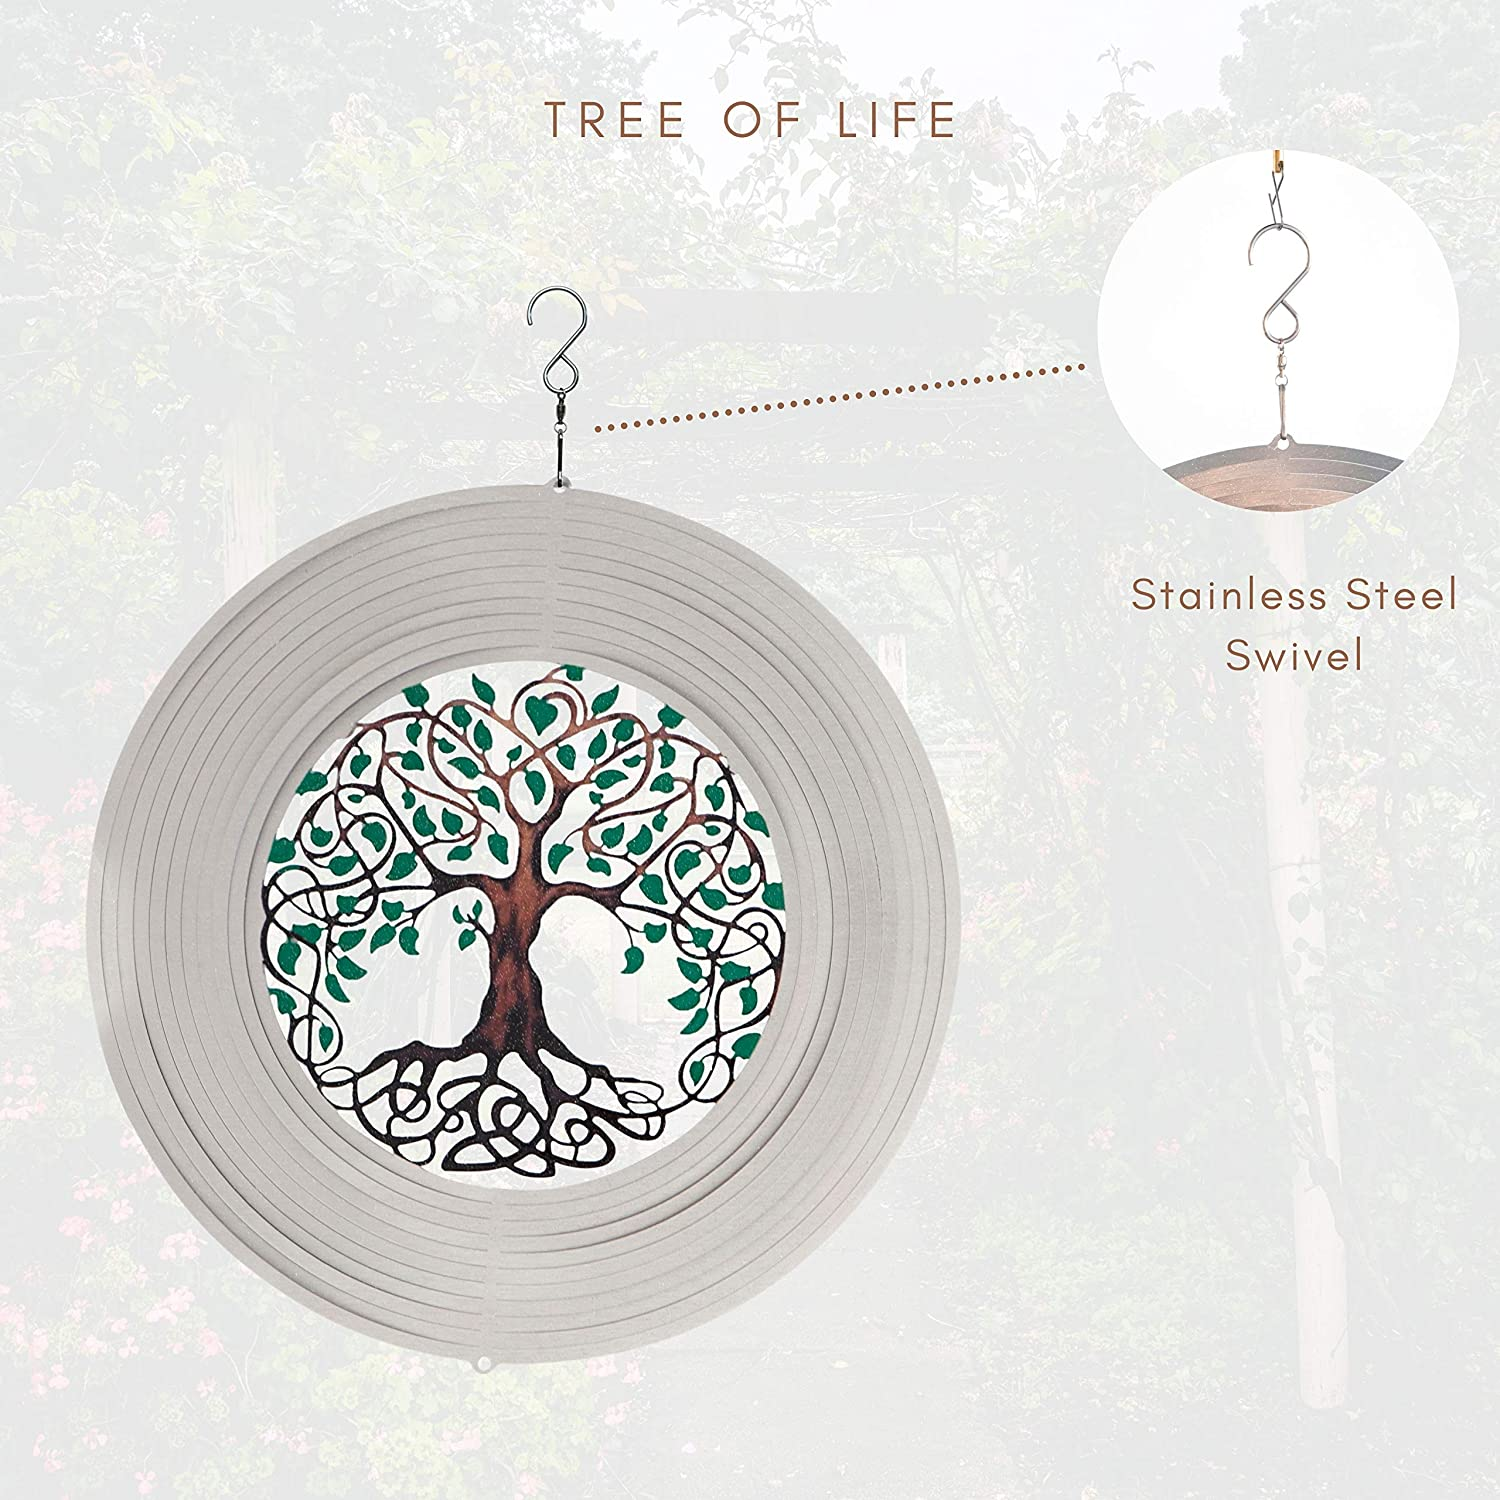 Spinart Tree of life Wind Spinner kinetic ornament decor for the outdoor garden and home decoration made from stainless steel and durable coated colour